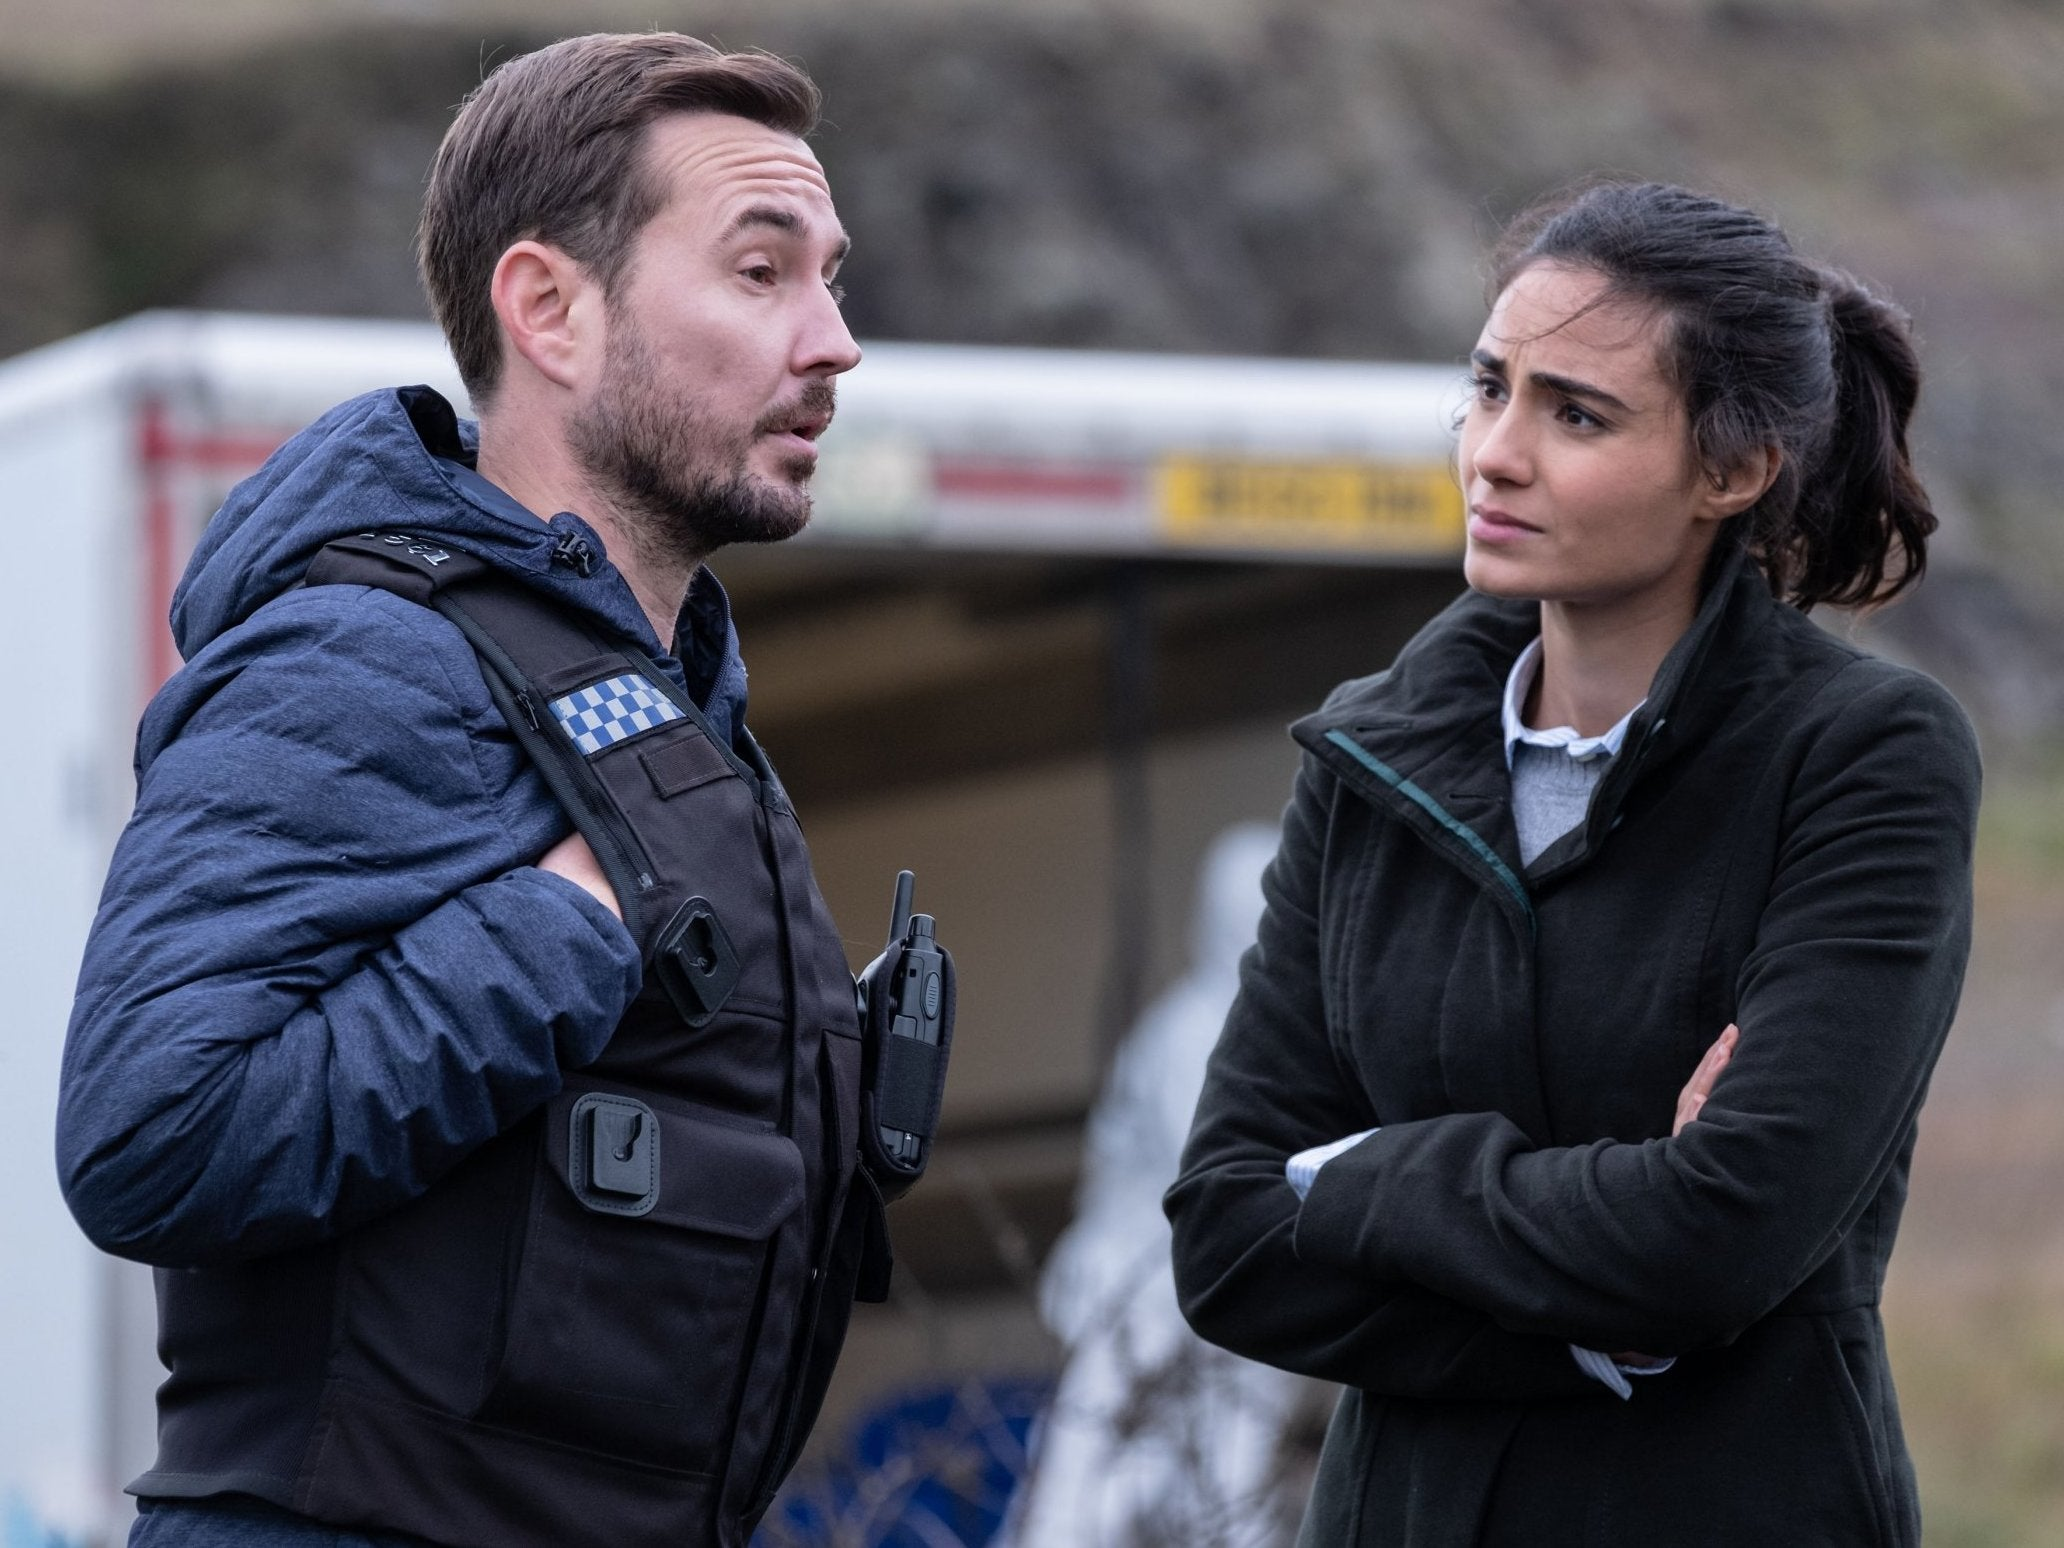 Line of Duty series 5, episode 3 review: Jed Mercurio at his most